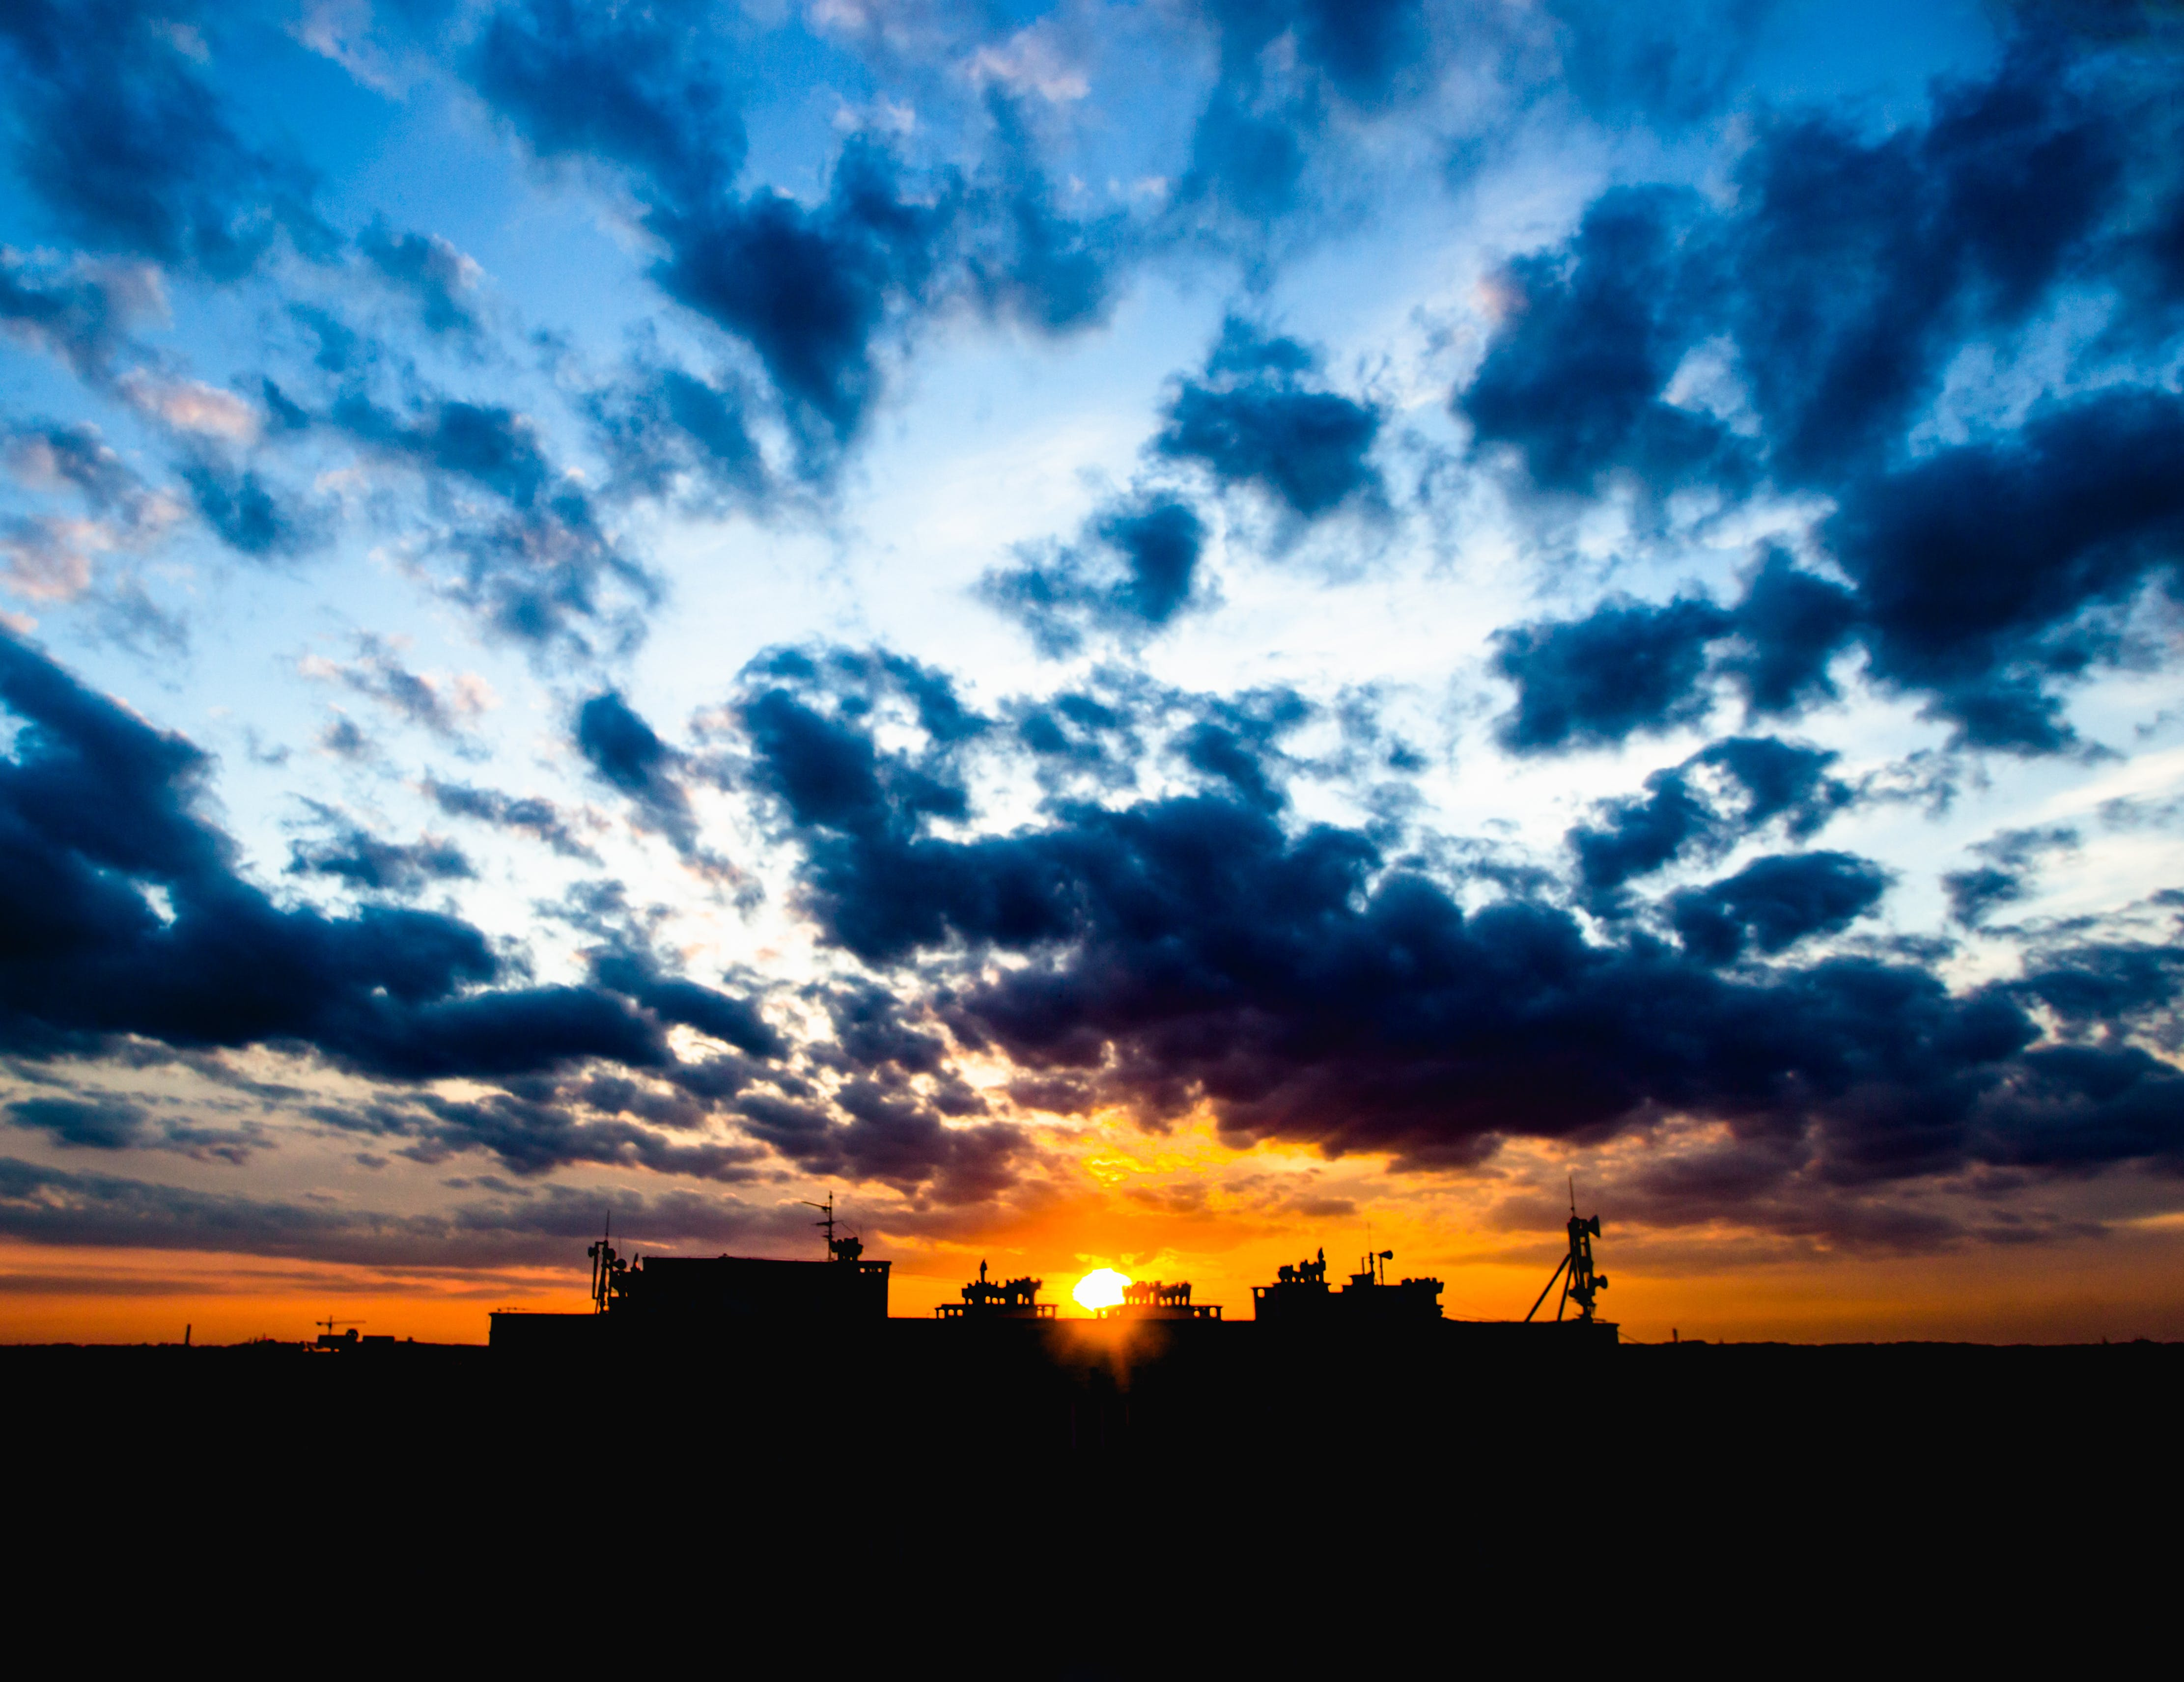 Free stock photo of sunset, clouds, cloudy, sun